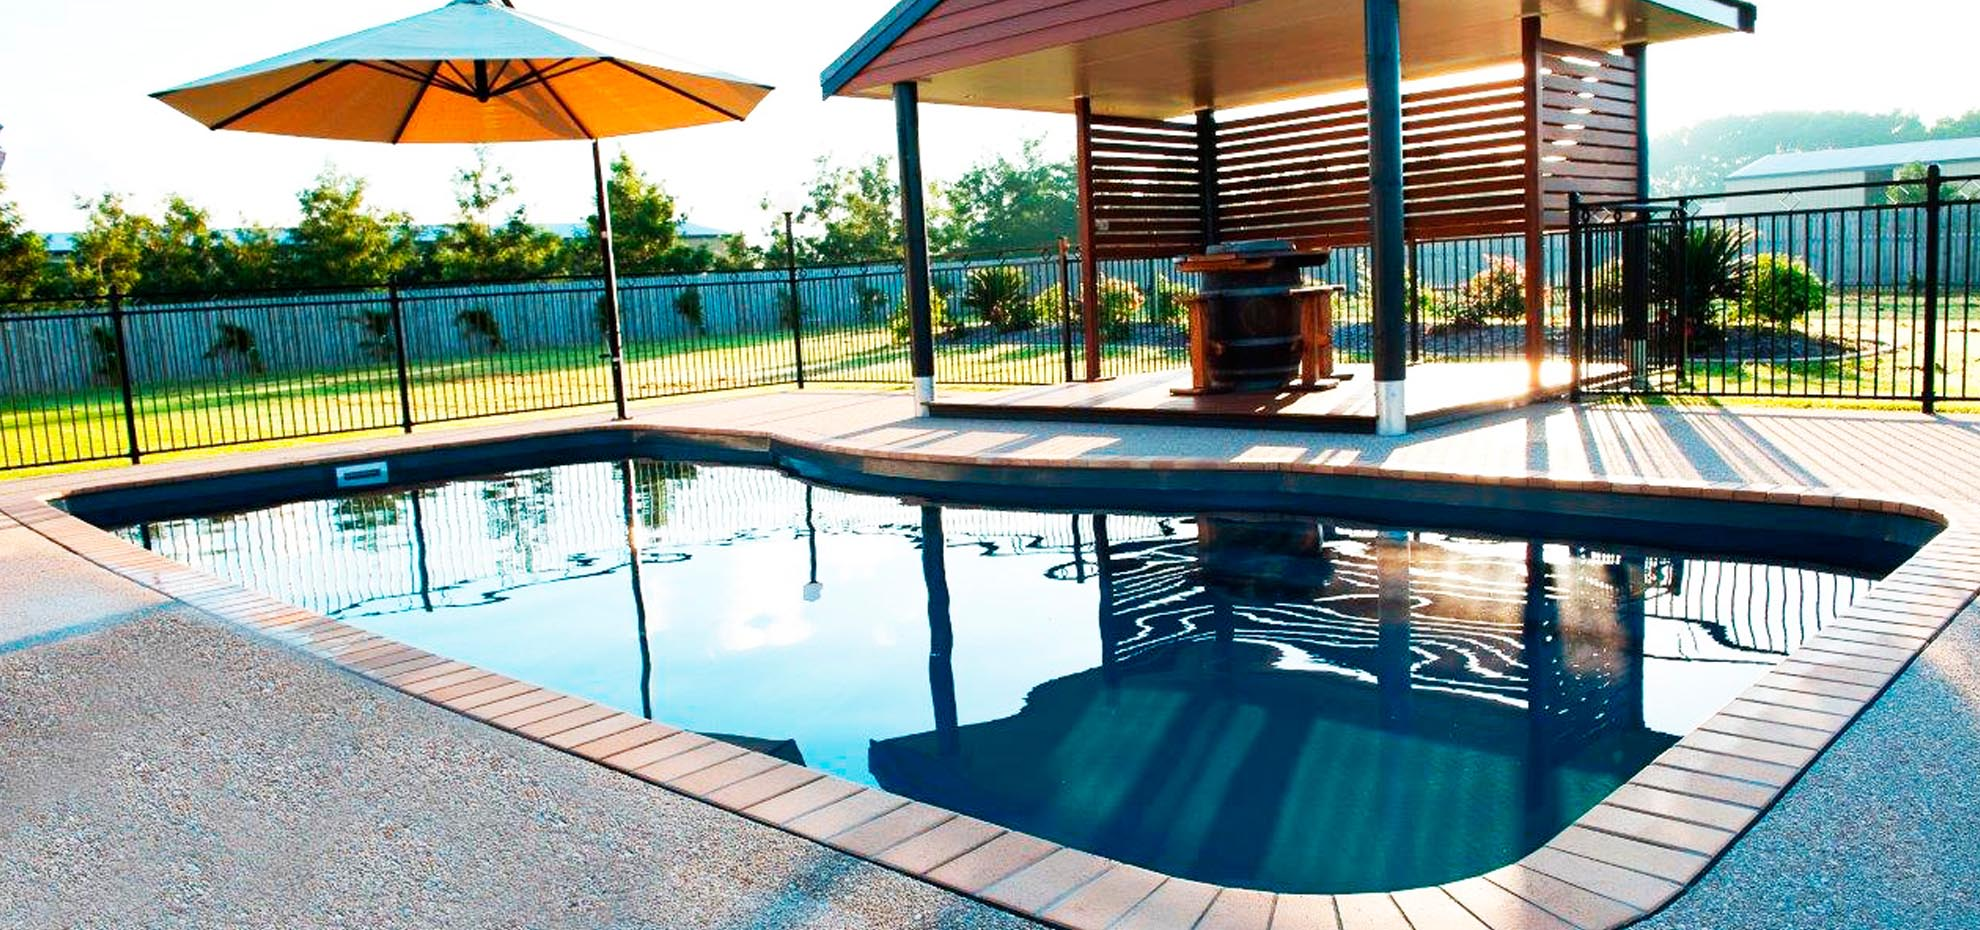 Moroccan Fibreglass Pool with pergola and coping by Leisure Pools